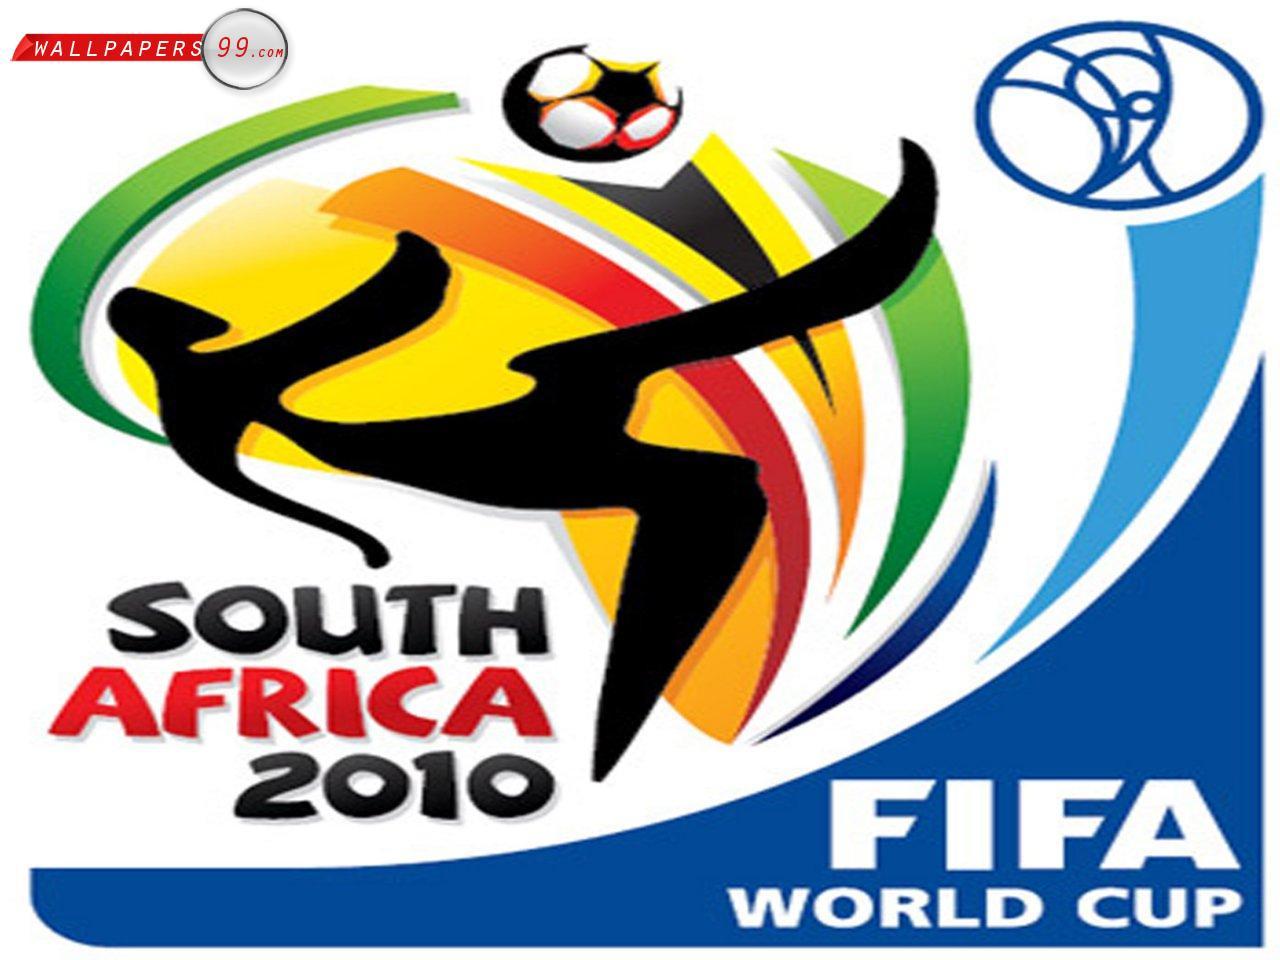 WALLPAPERMANIACAL - Desk TOP Wallpaper: Fifa World Cup 2010